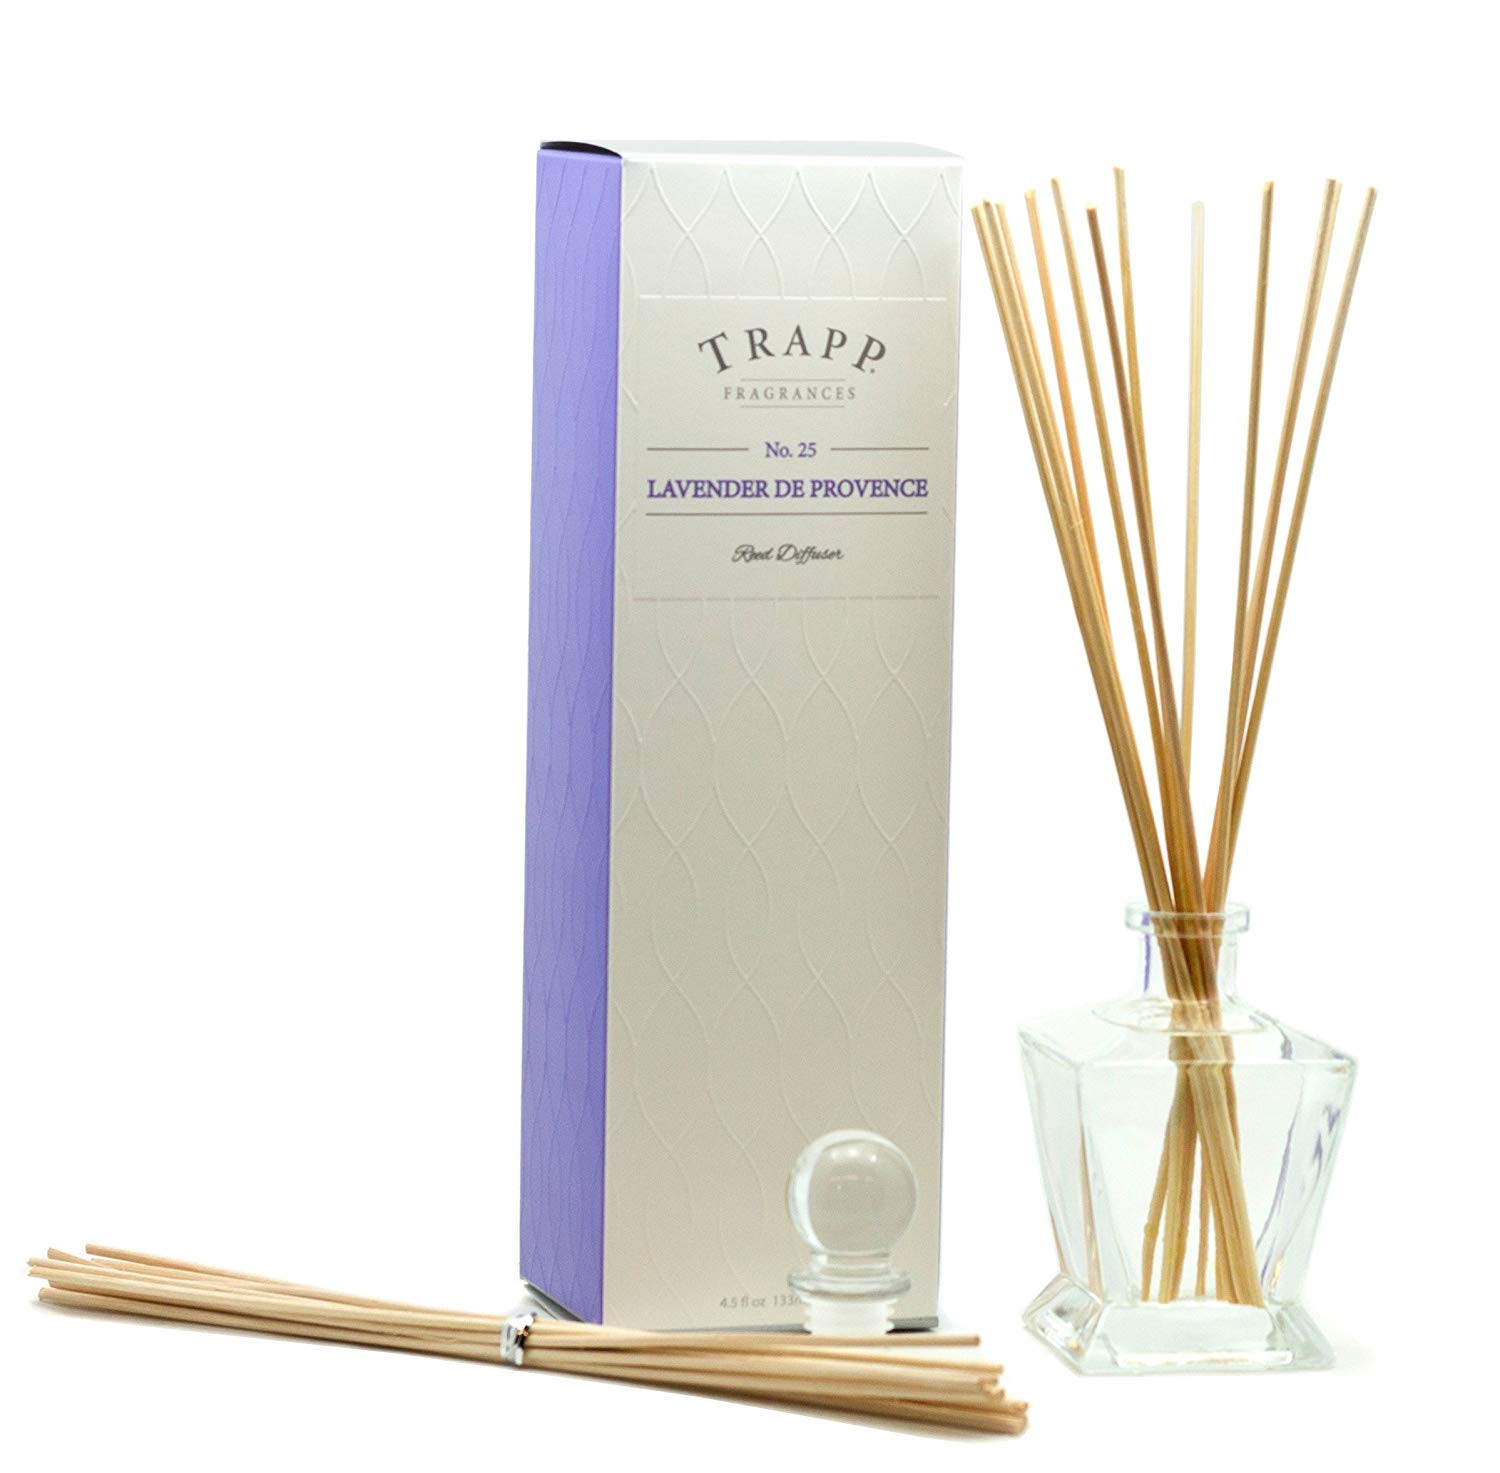 jonathan adler i scream vase of amazon com trapp ambiance collection reed diffuser kit no 25 for amazon com trapp ambiance collection reed diffuser kit no 25 lavender de provence 4 5 ounce home kitchen